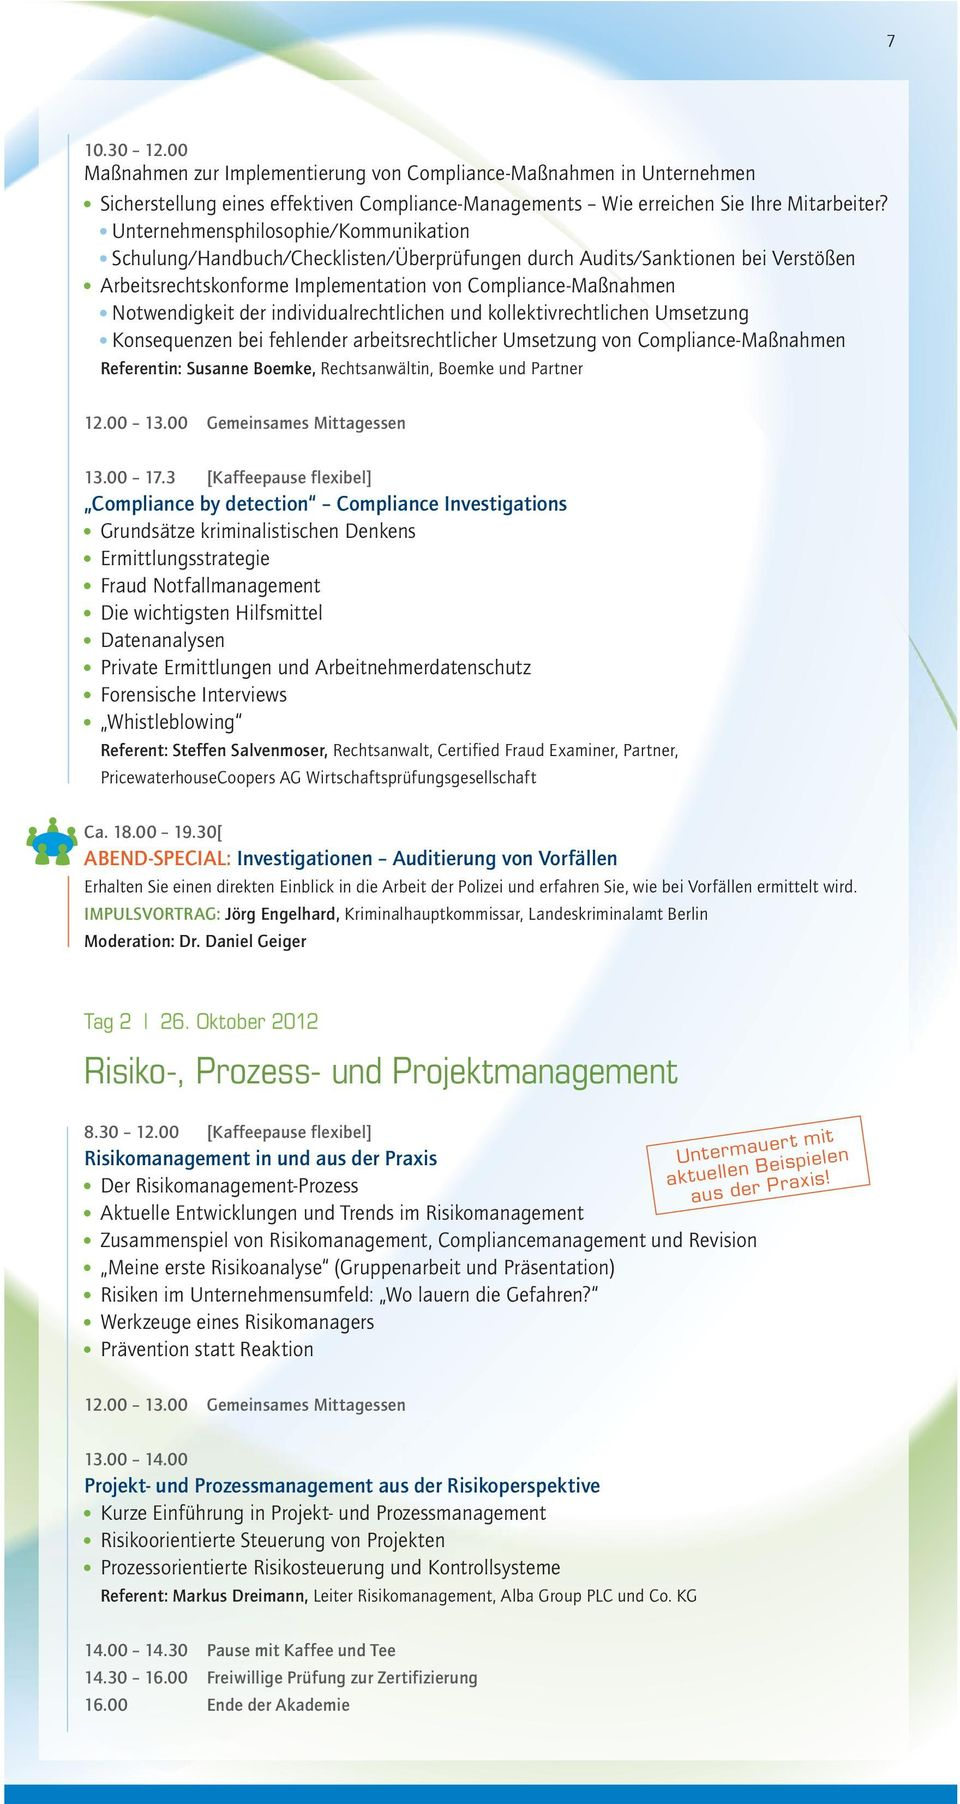 Tolle Risikomanagement Beispielvorlage Bilder - Entry Level Resume ...